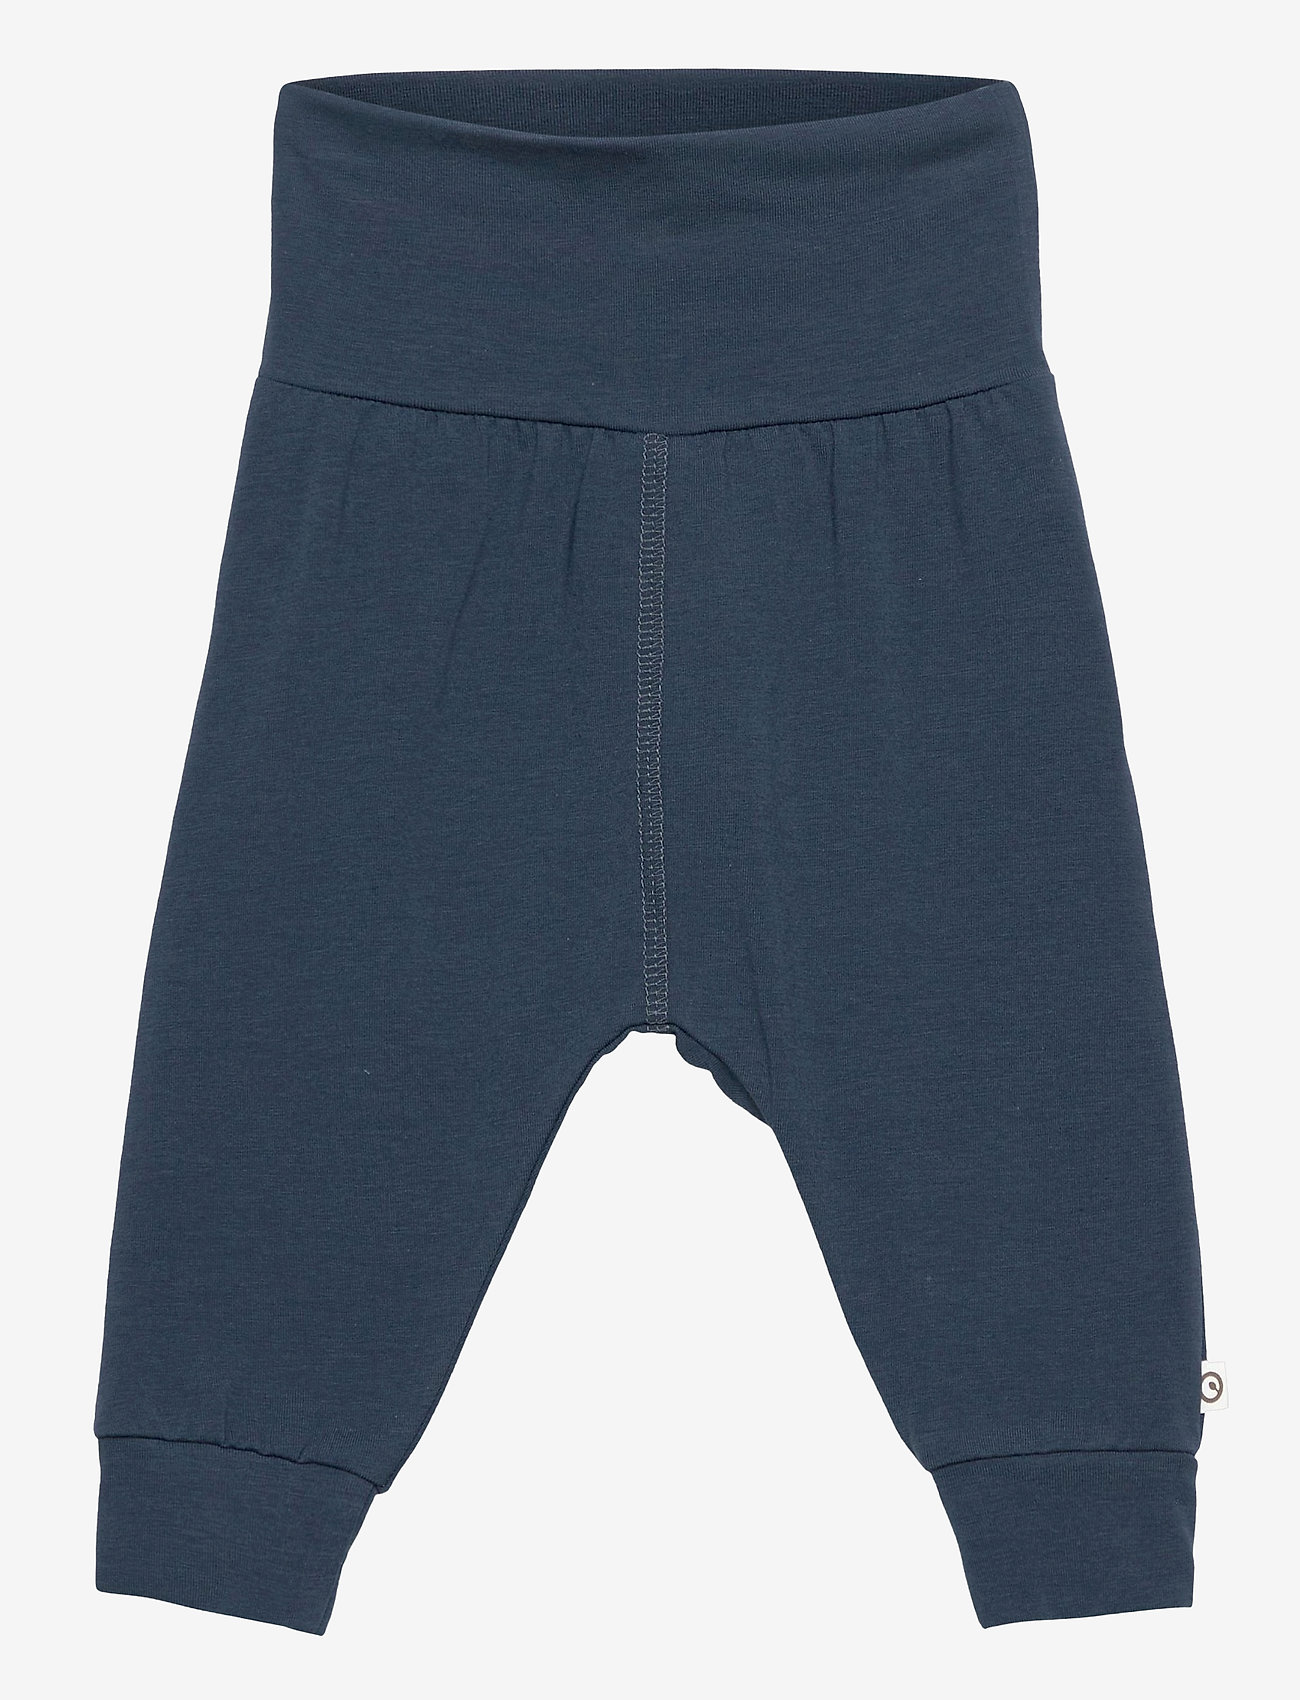 Müsli by Green Cotton - Cozy me pants - trousers - midnight - 0